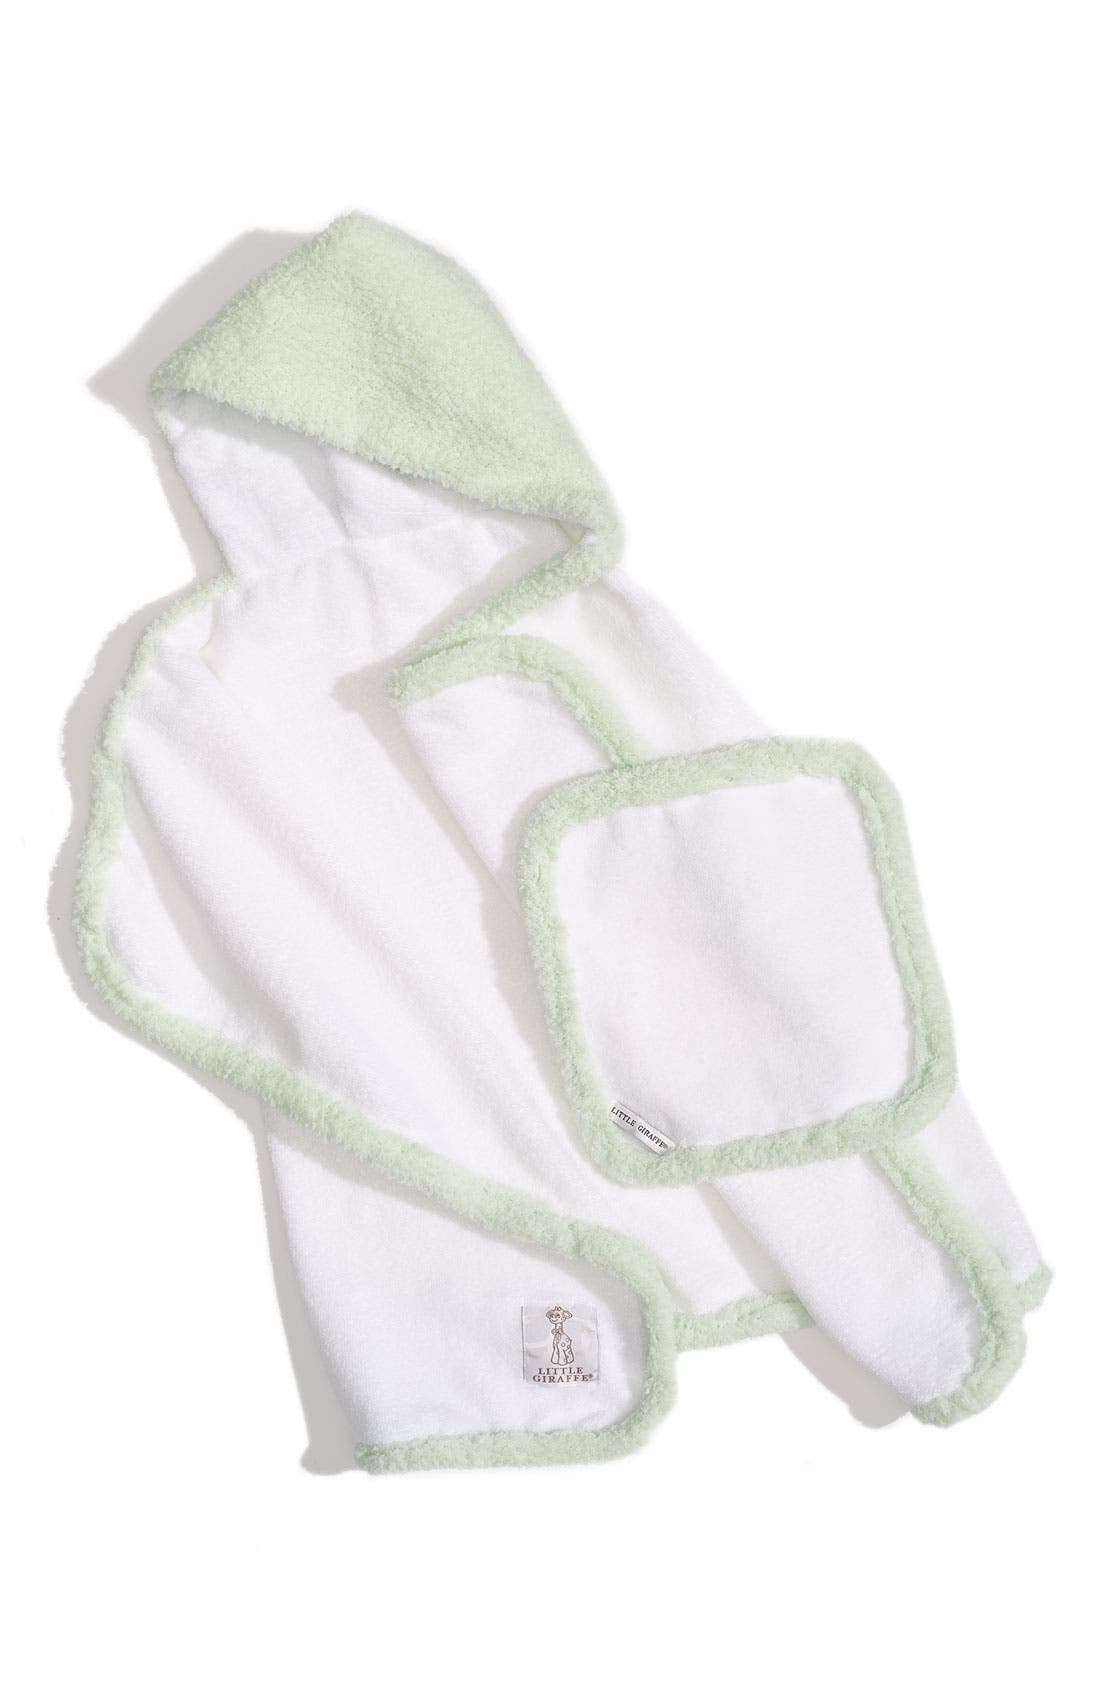 Main Image - Little Giraffe Towel & Washcloth Set (Infant & Toddler)